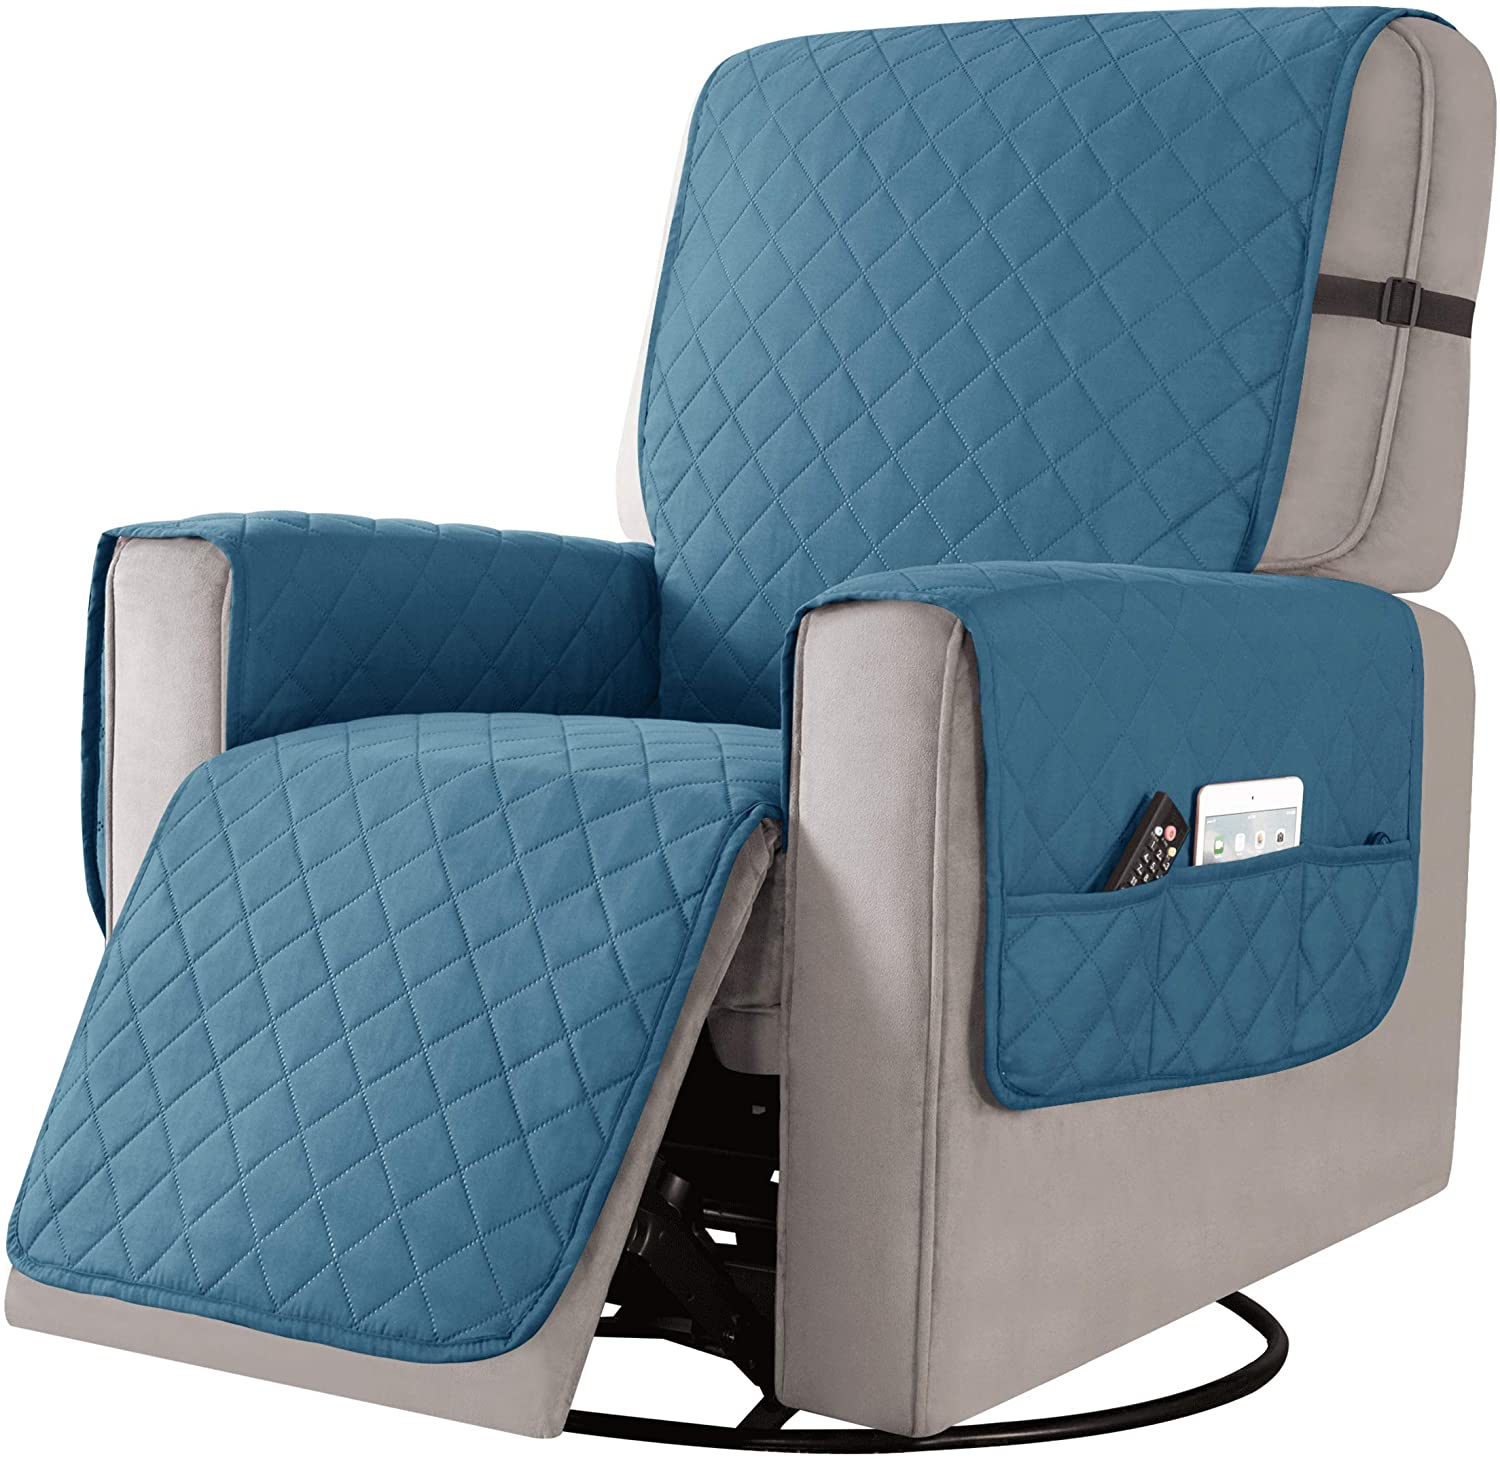 CHUN YI Recliner Chair Slipcover 25 Inch Reversible Small Sofa Cover with Elastic Straps Washable Armchair Couch Cover Furniture Protector for Kids Pets(Small, Turquoise)